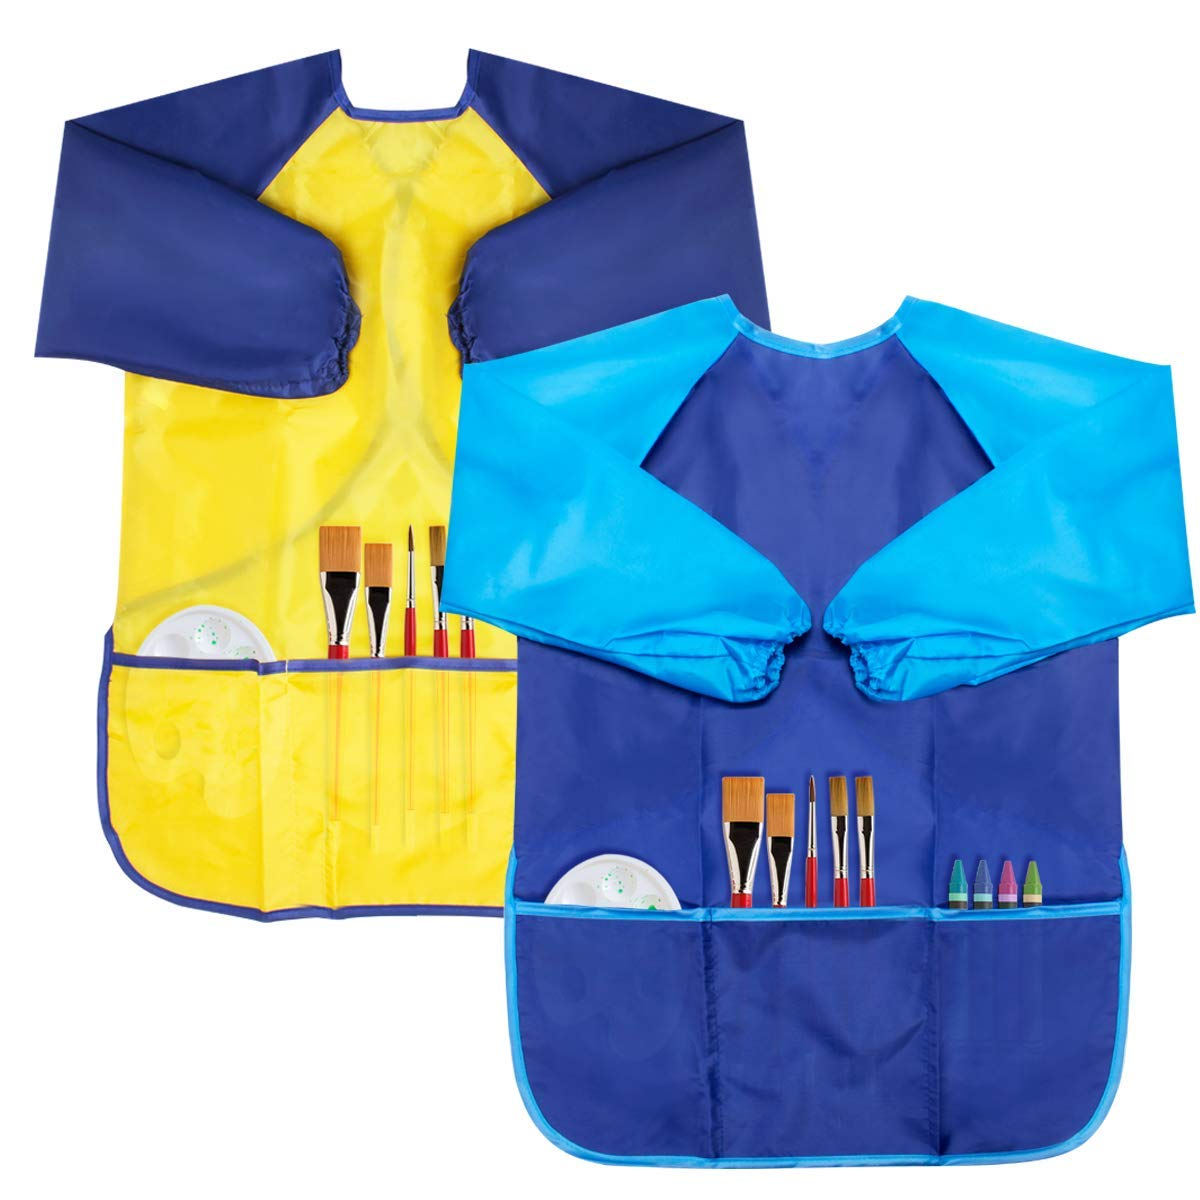 BAHABY Kids Apron 2 Pack Toddler Art Smock Toddler Smock for Kids Smock Children Waterproof Painting Aprons Artist Smock Long Sleeve with Pockets for Toddler Paint Set Toddler Smocks for Painting B&Y